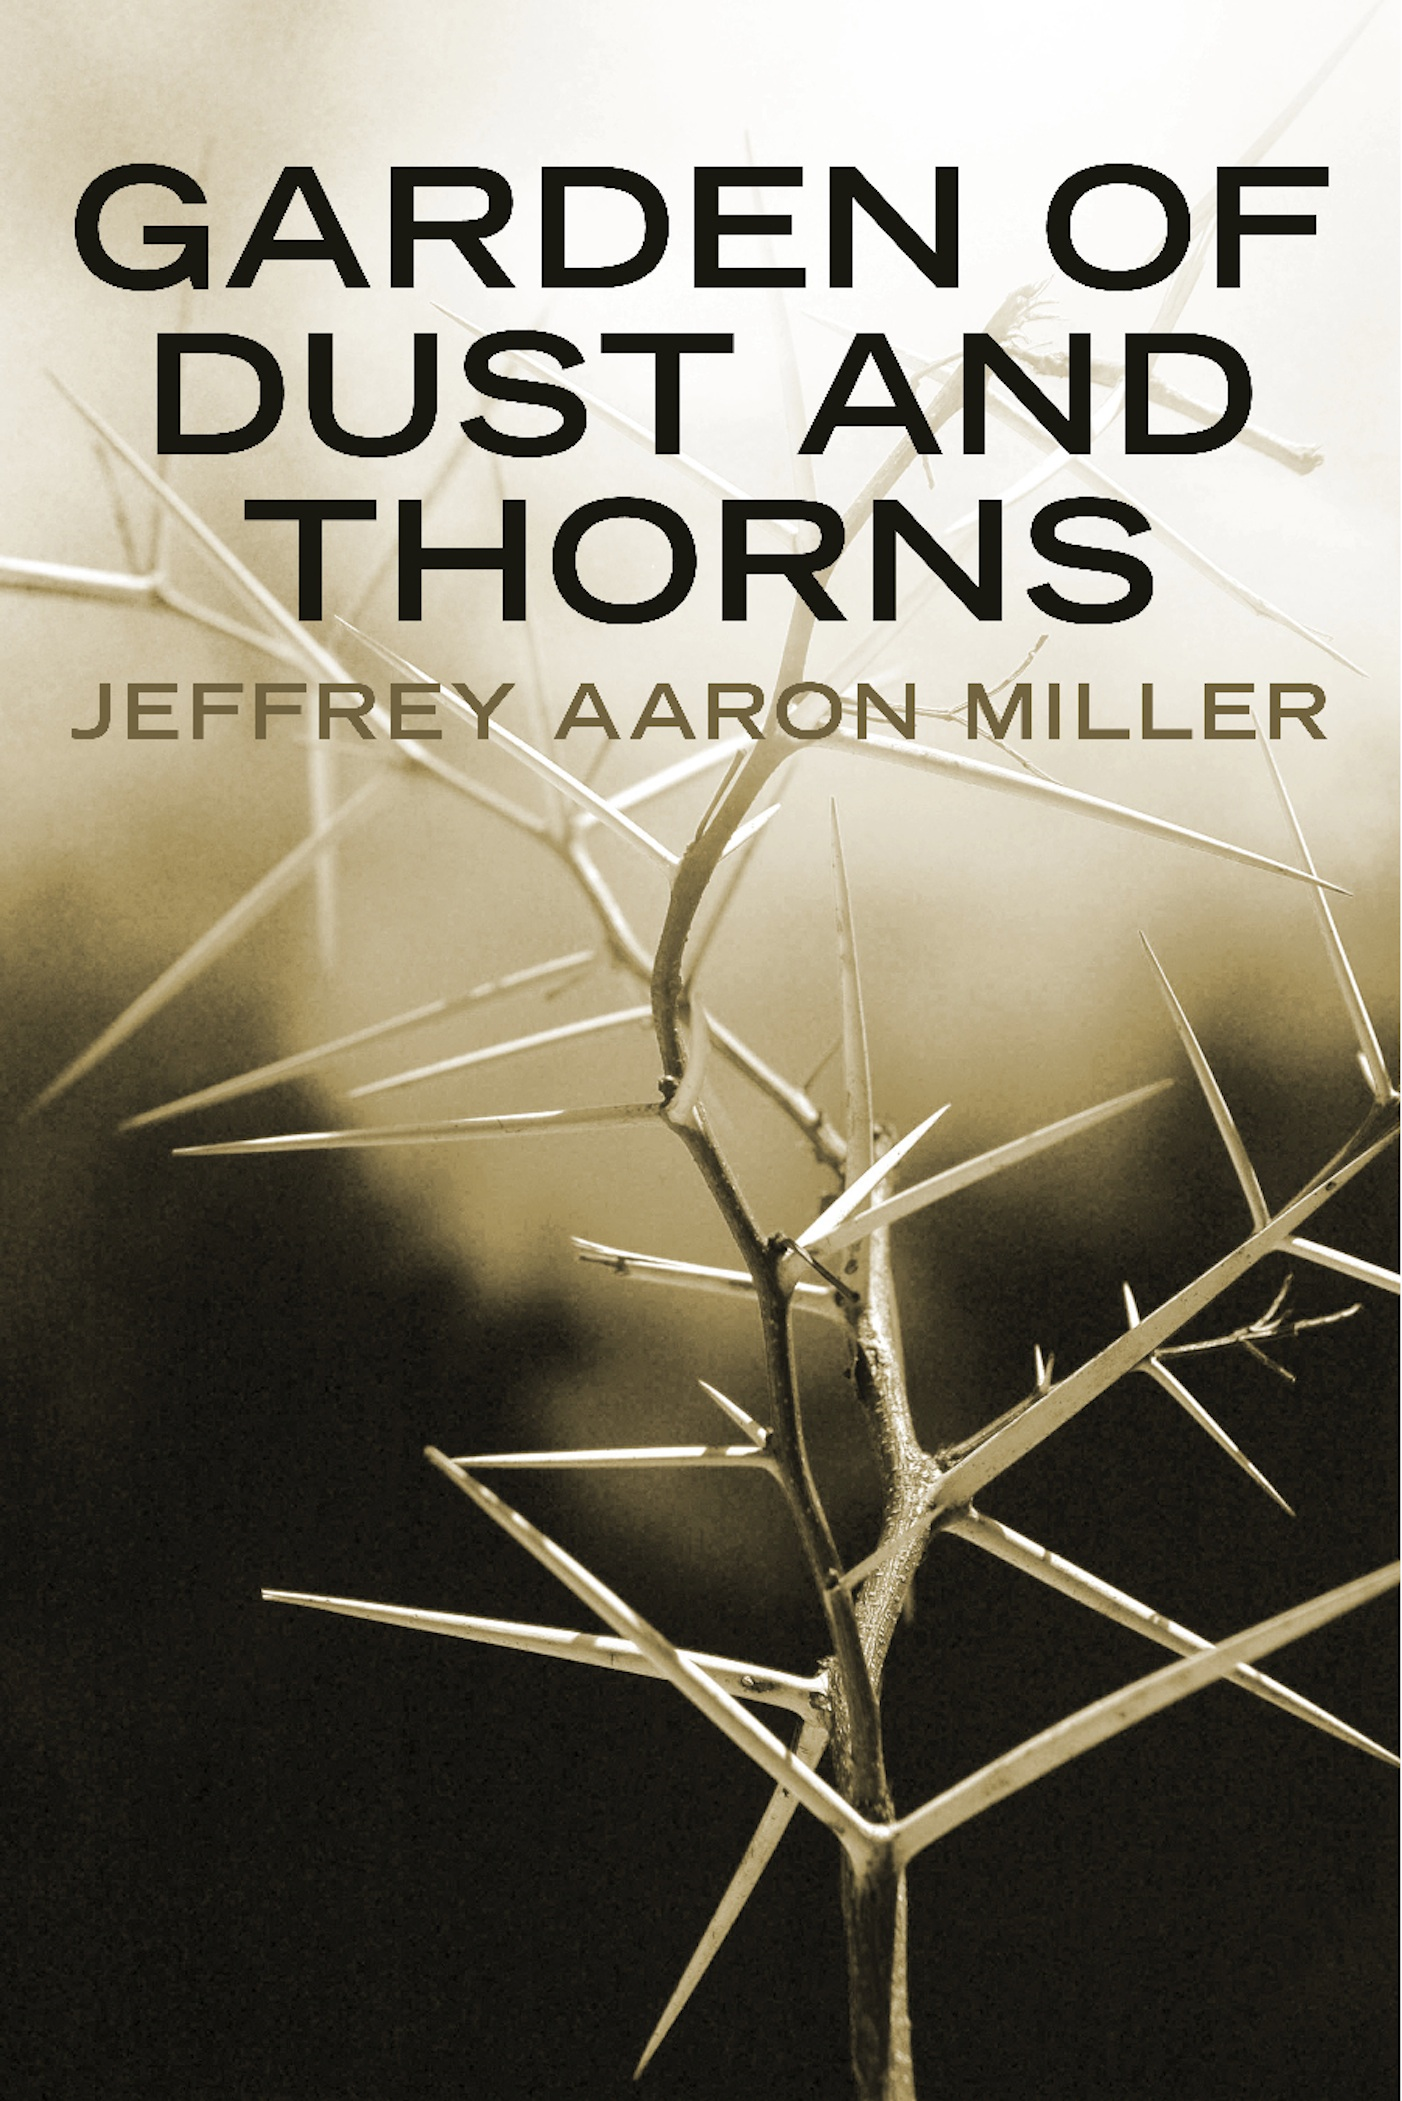 Garden of Dust and Thorns